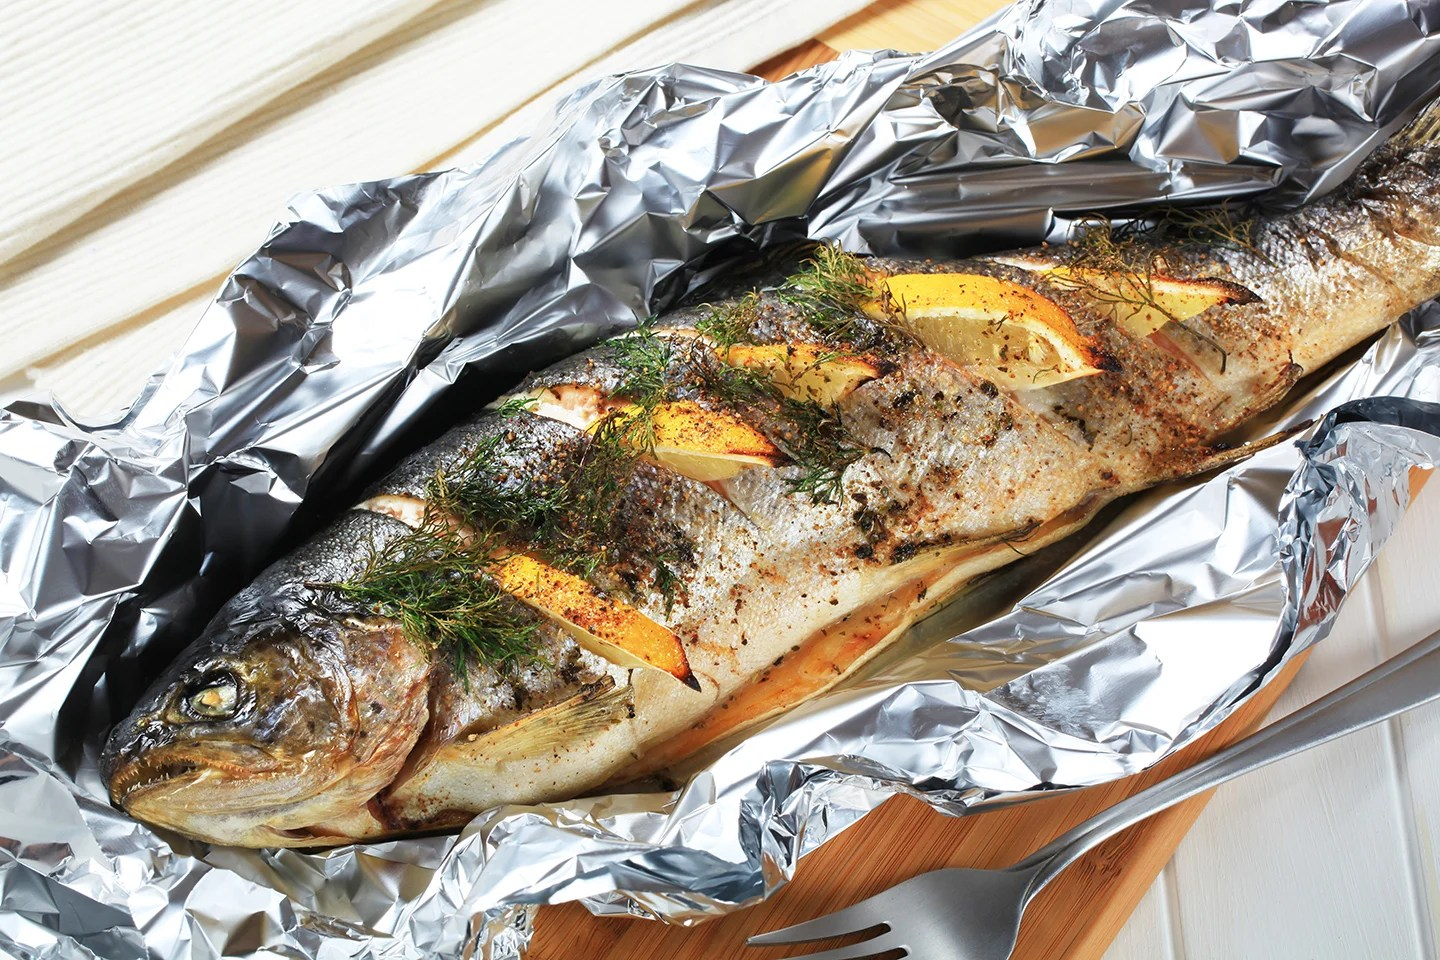 A whole trout baked in foil